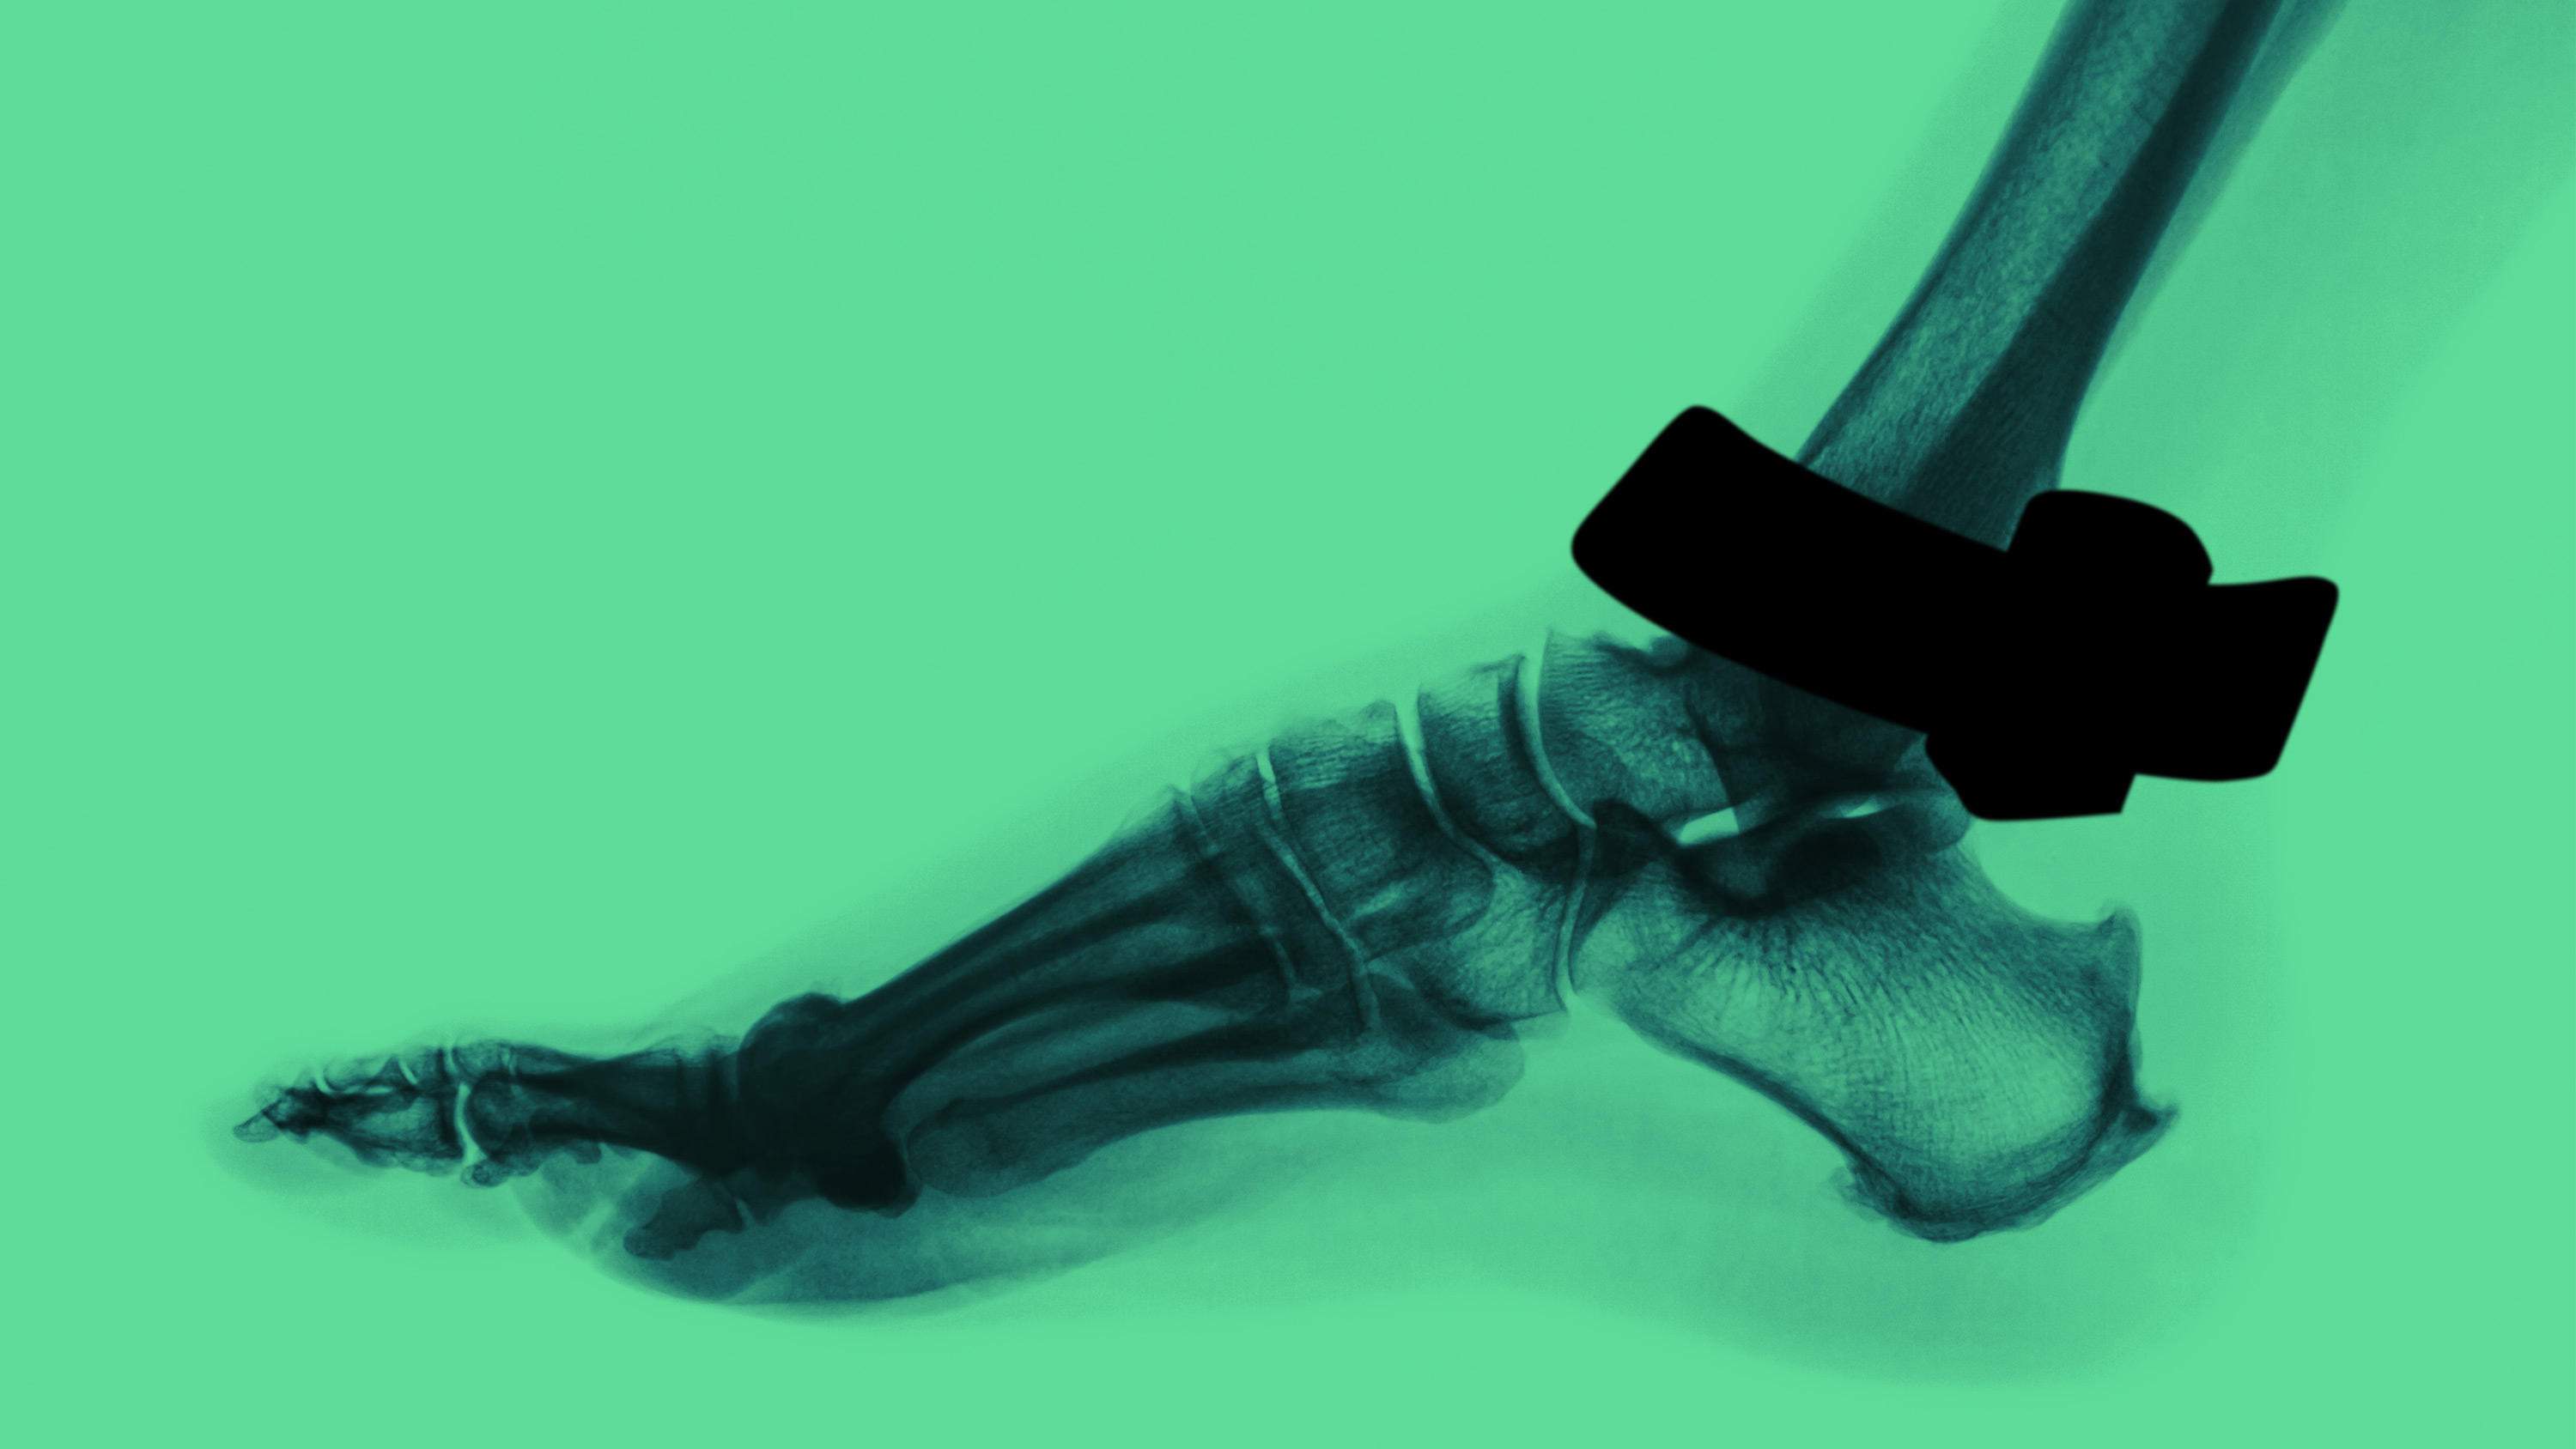 x-ray view of ankle with ankle monitor